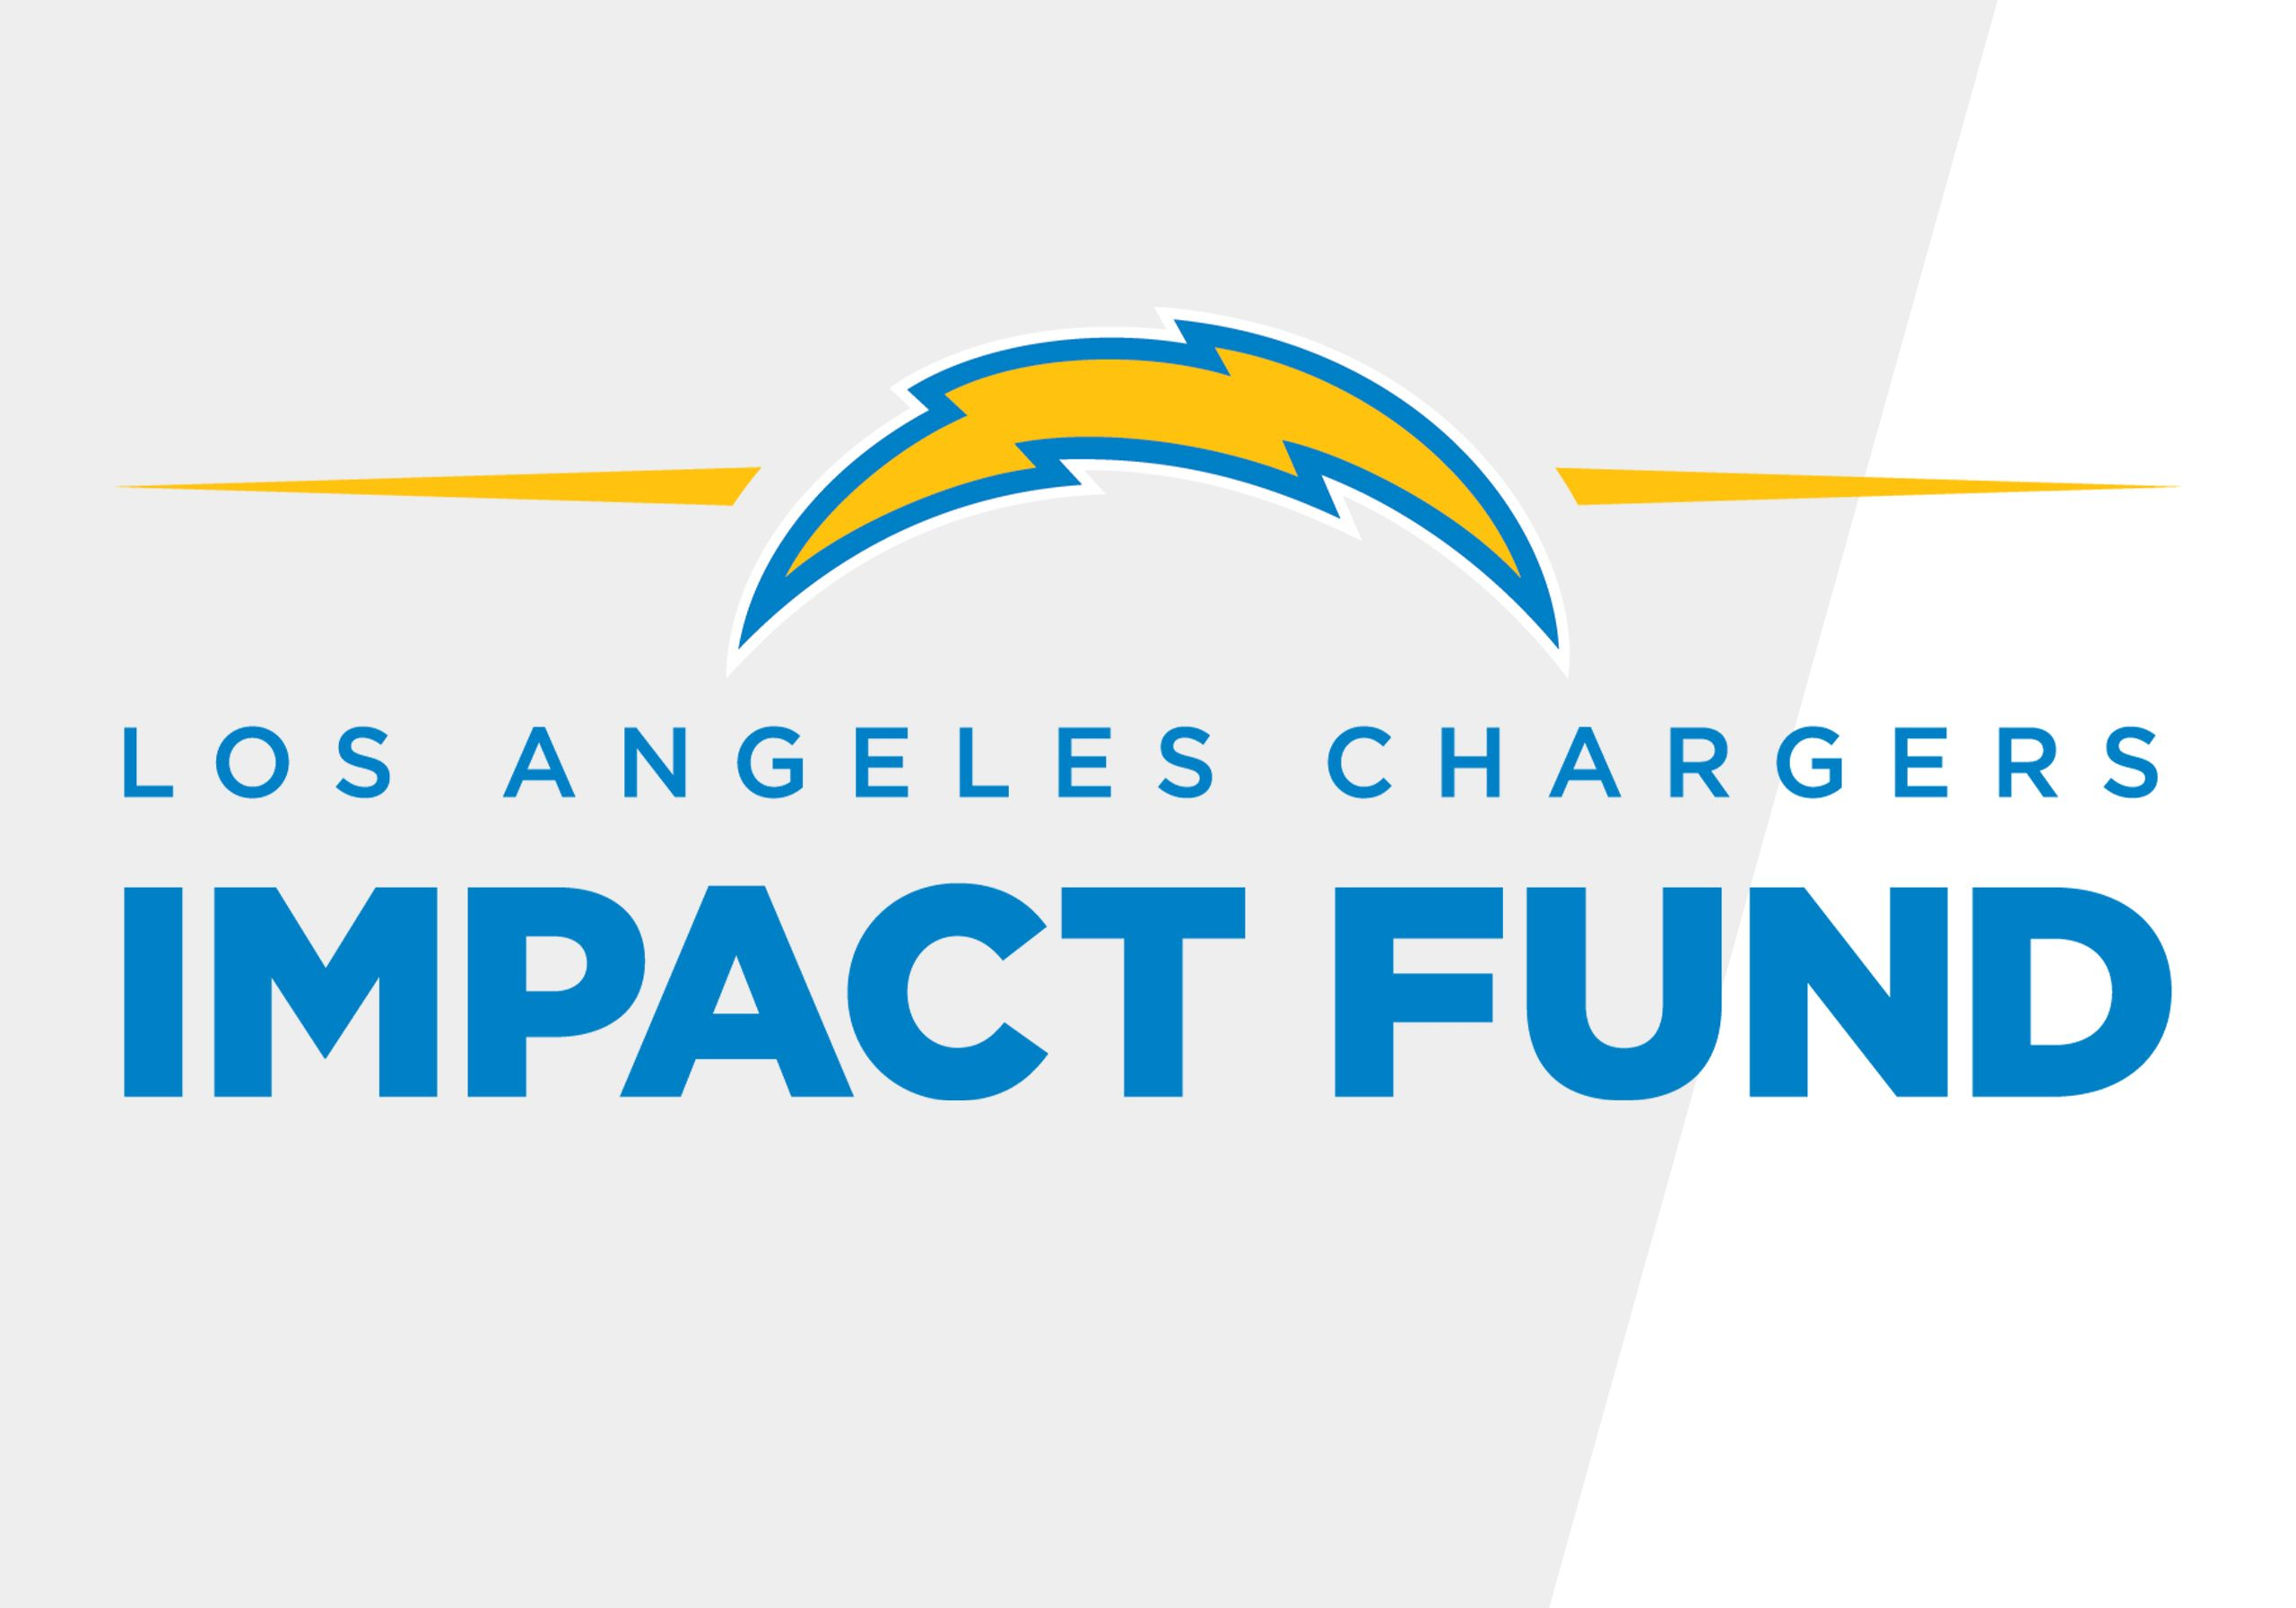 Los Angeles Chargers Impact Fund